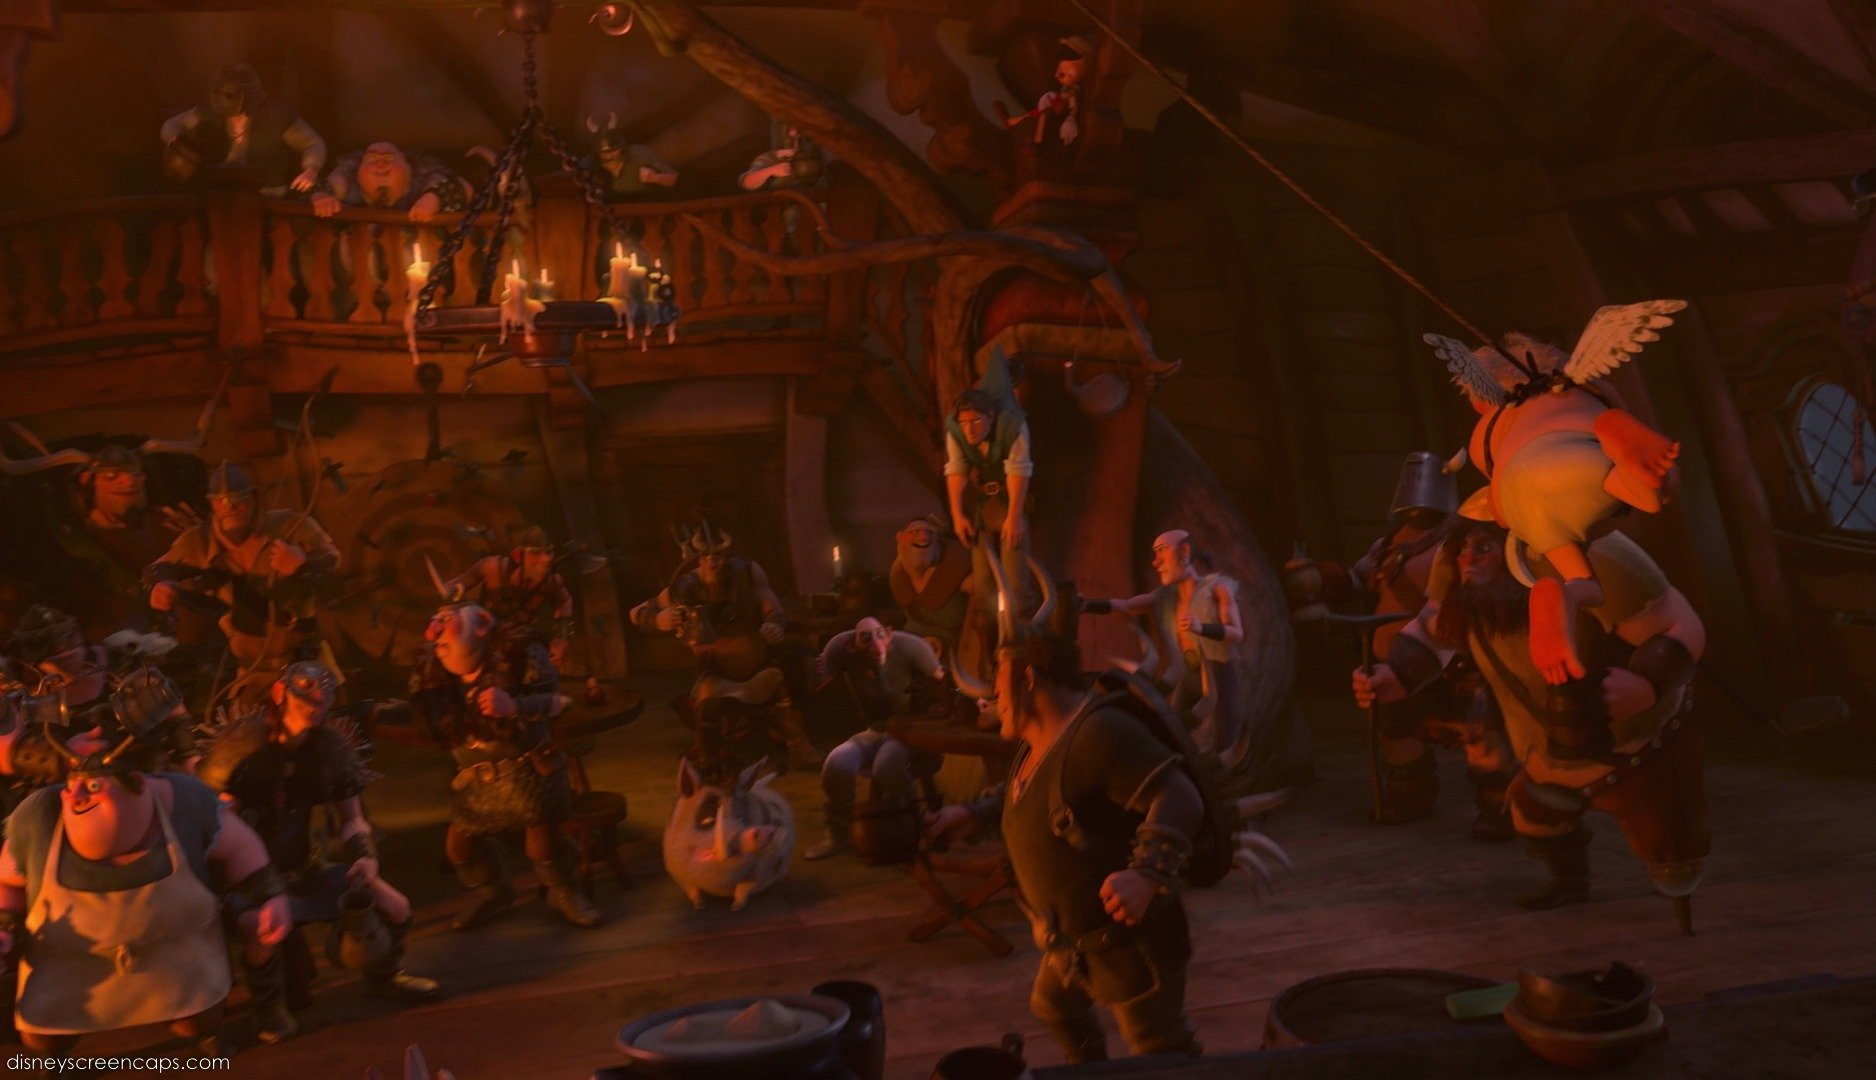 Tangled-disneyscreencaps_com-4721.jpg